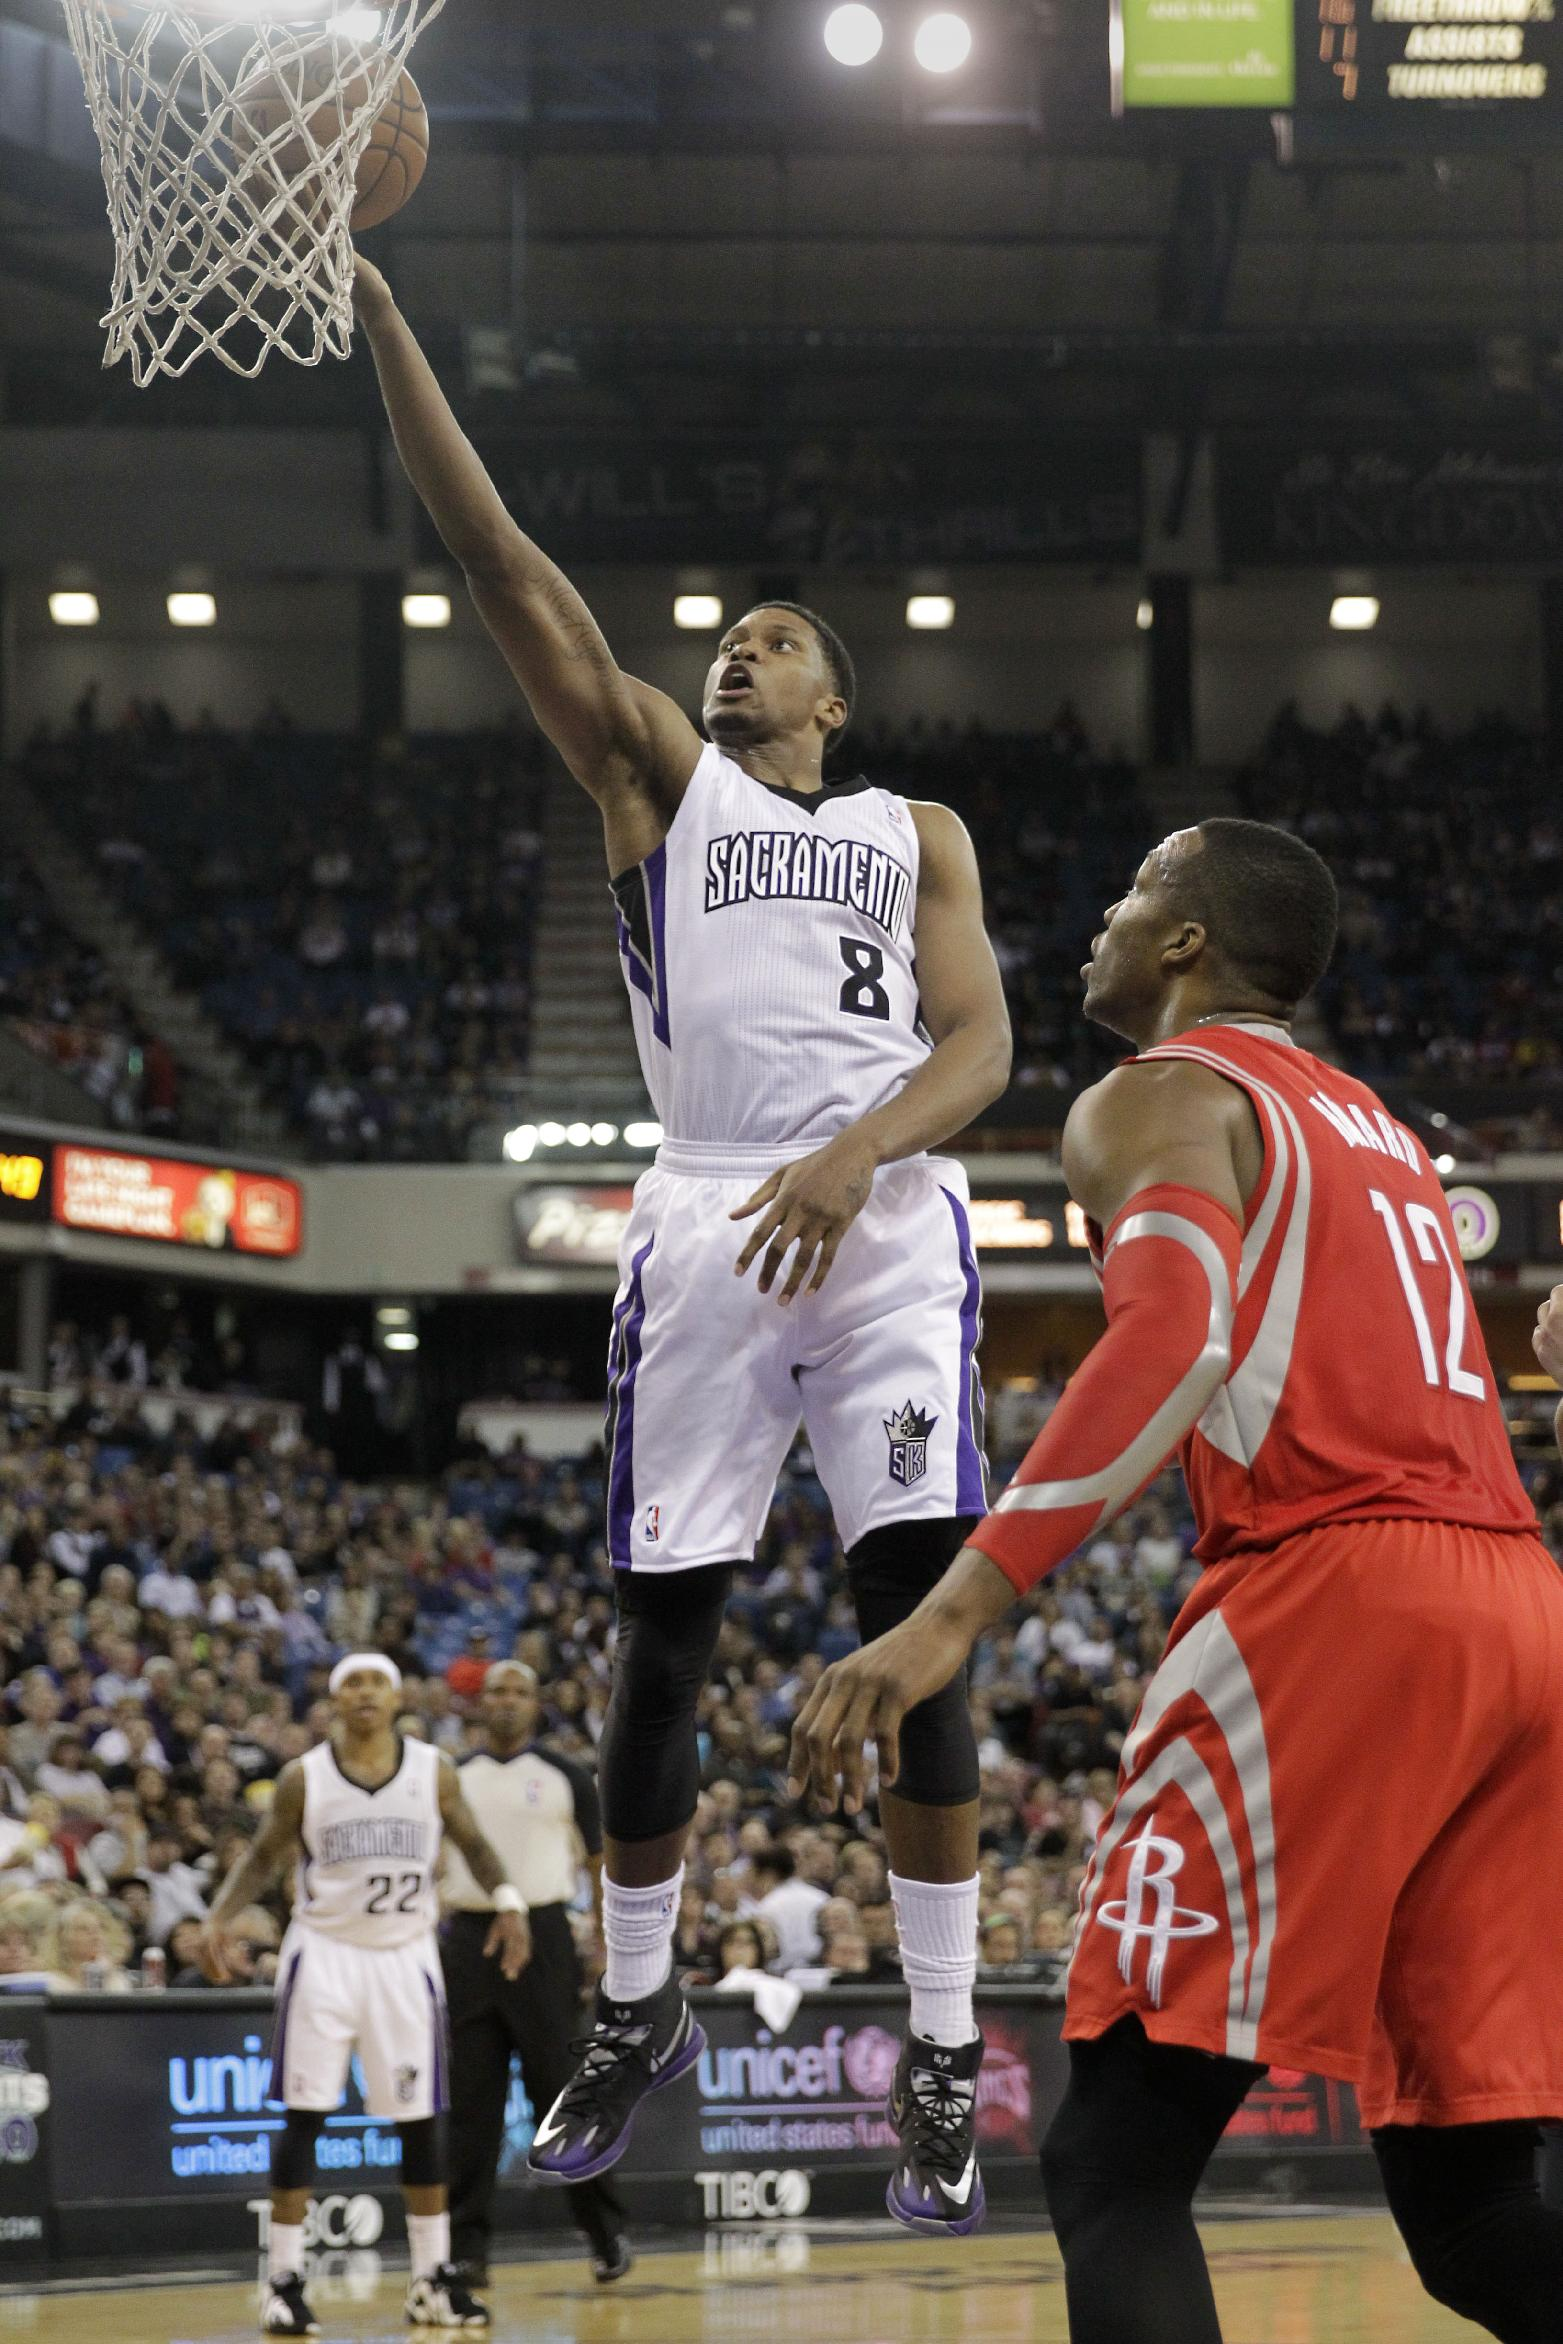 Sacramento Kings forward Rudy Gay, left, drives to the basket against Houston Rockets center Dwight Howard during the third quarter of an NBA basketball game in Sacramento, Calif., Tuesday Feb. 25, 2014.  The Rockets won 129-103